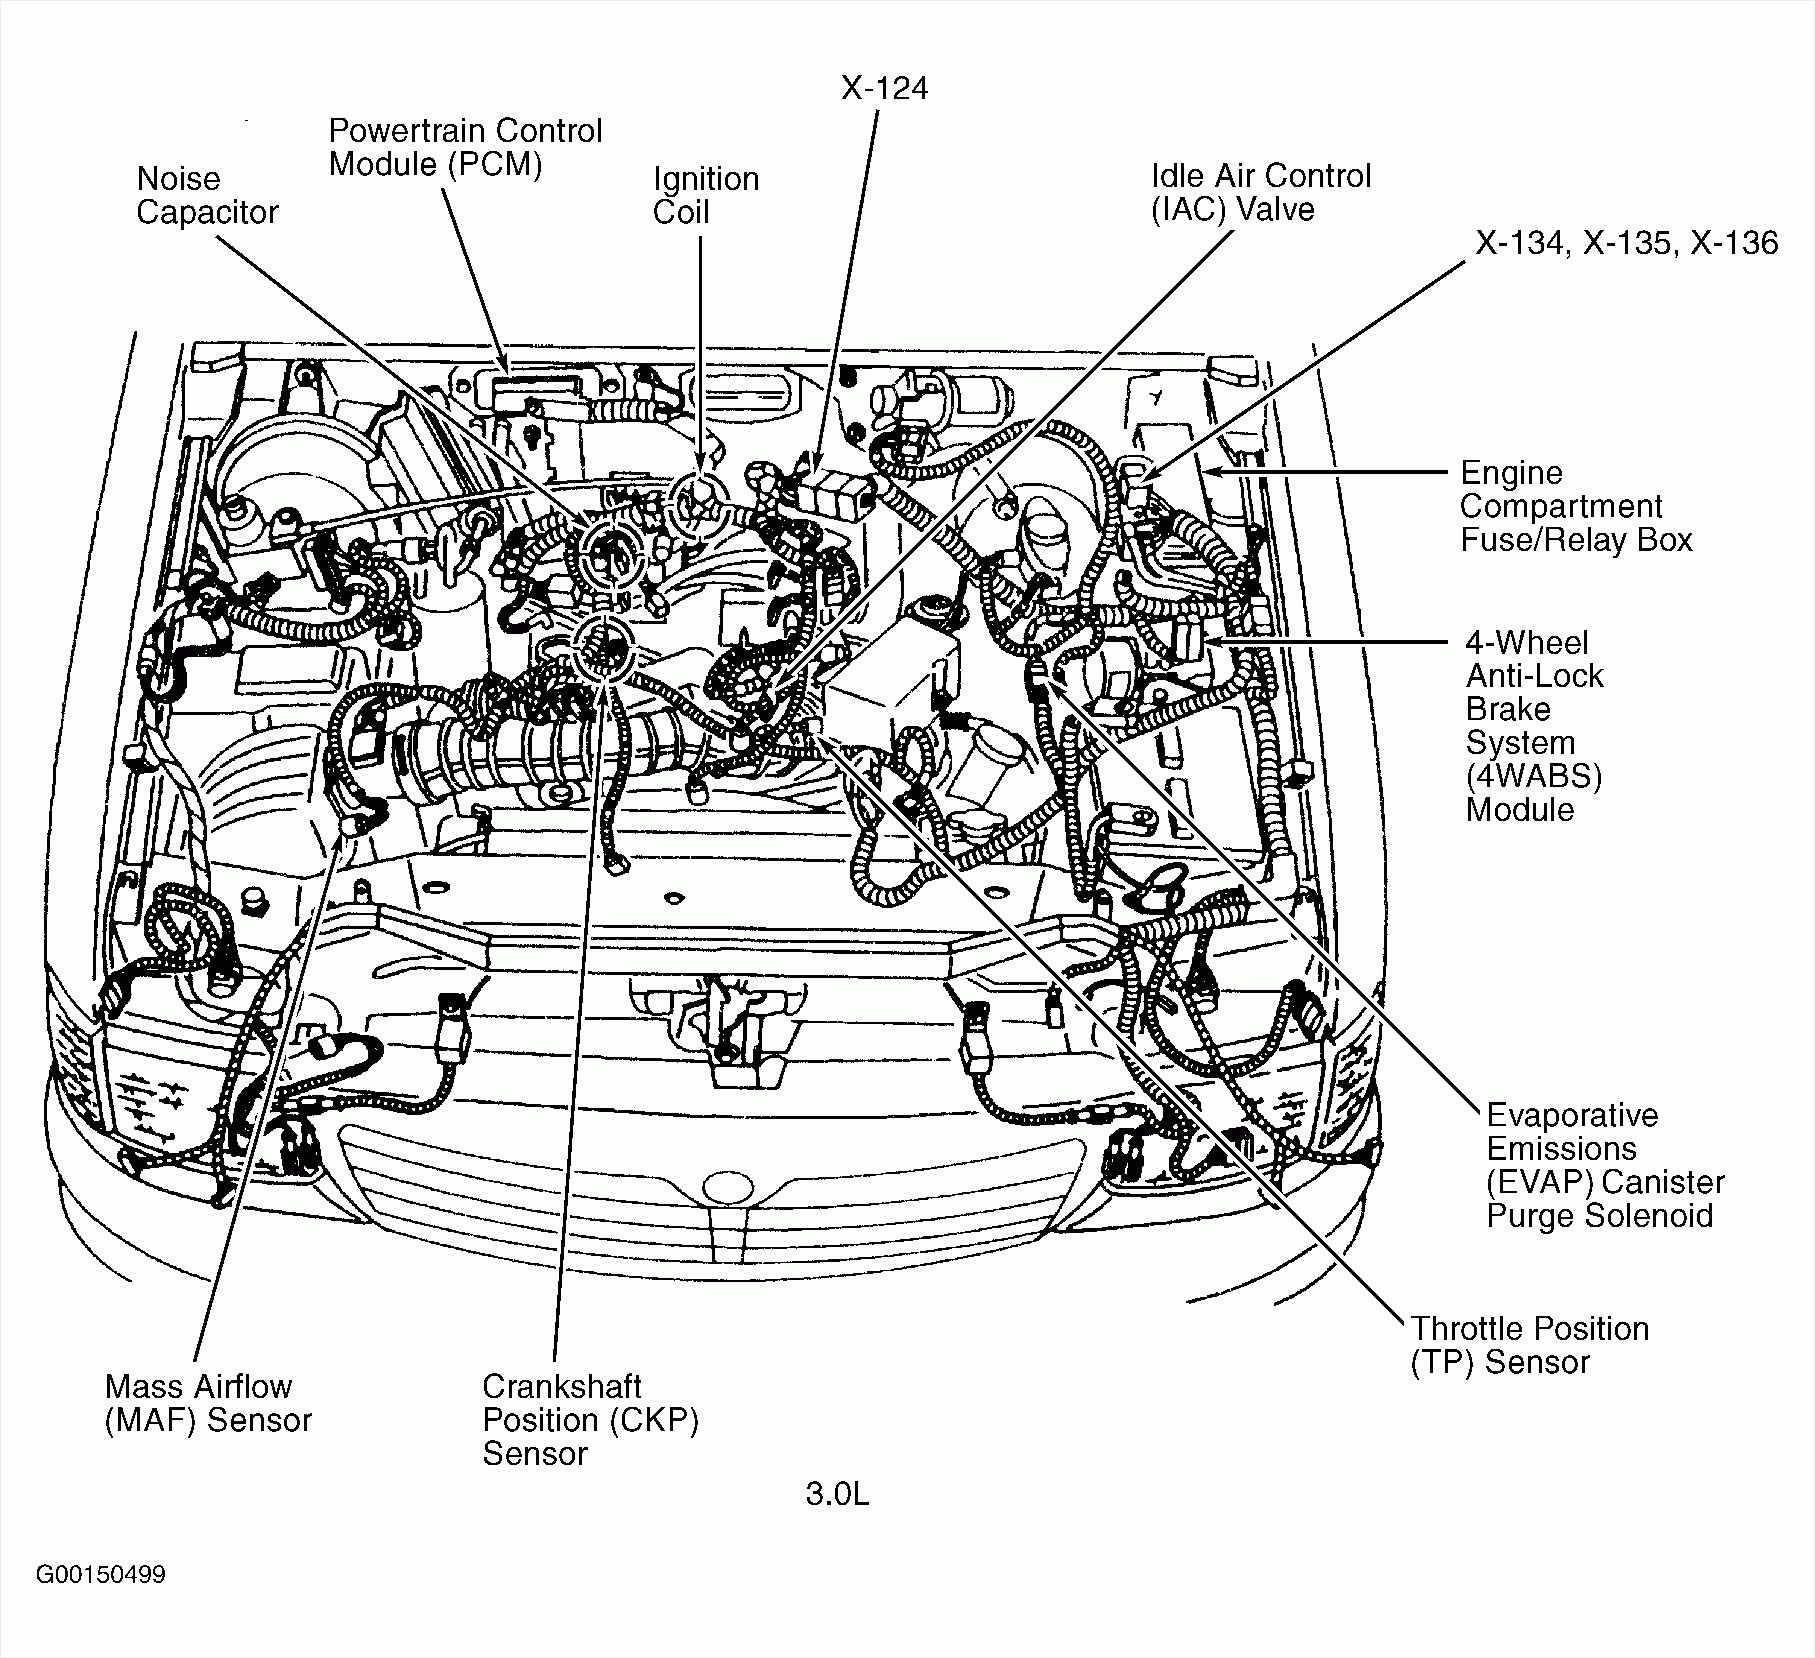 hight resolution of 2005 ford thunderbird engine diagram wiring diagram used 2005 ford engine diagram wiring diagram 2005 ford